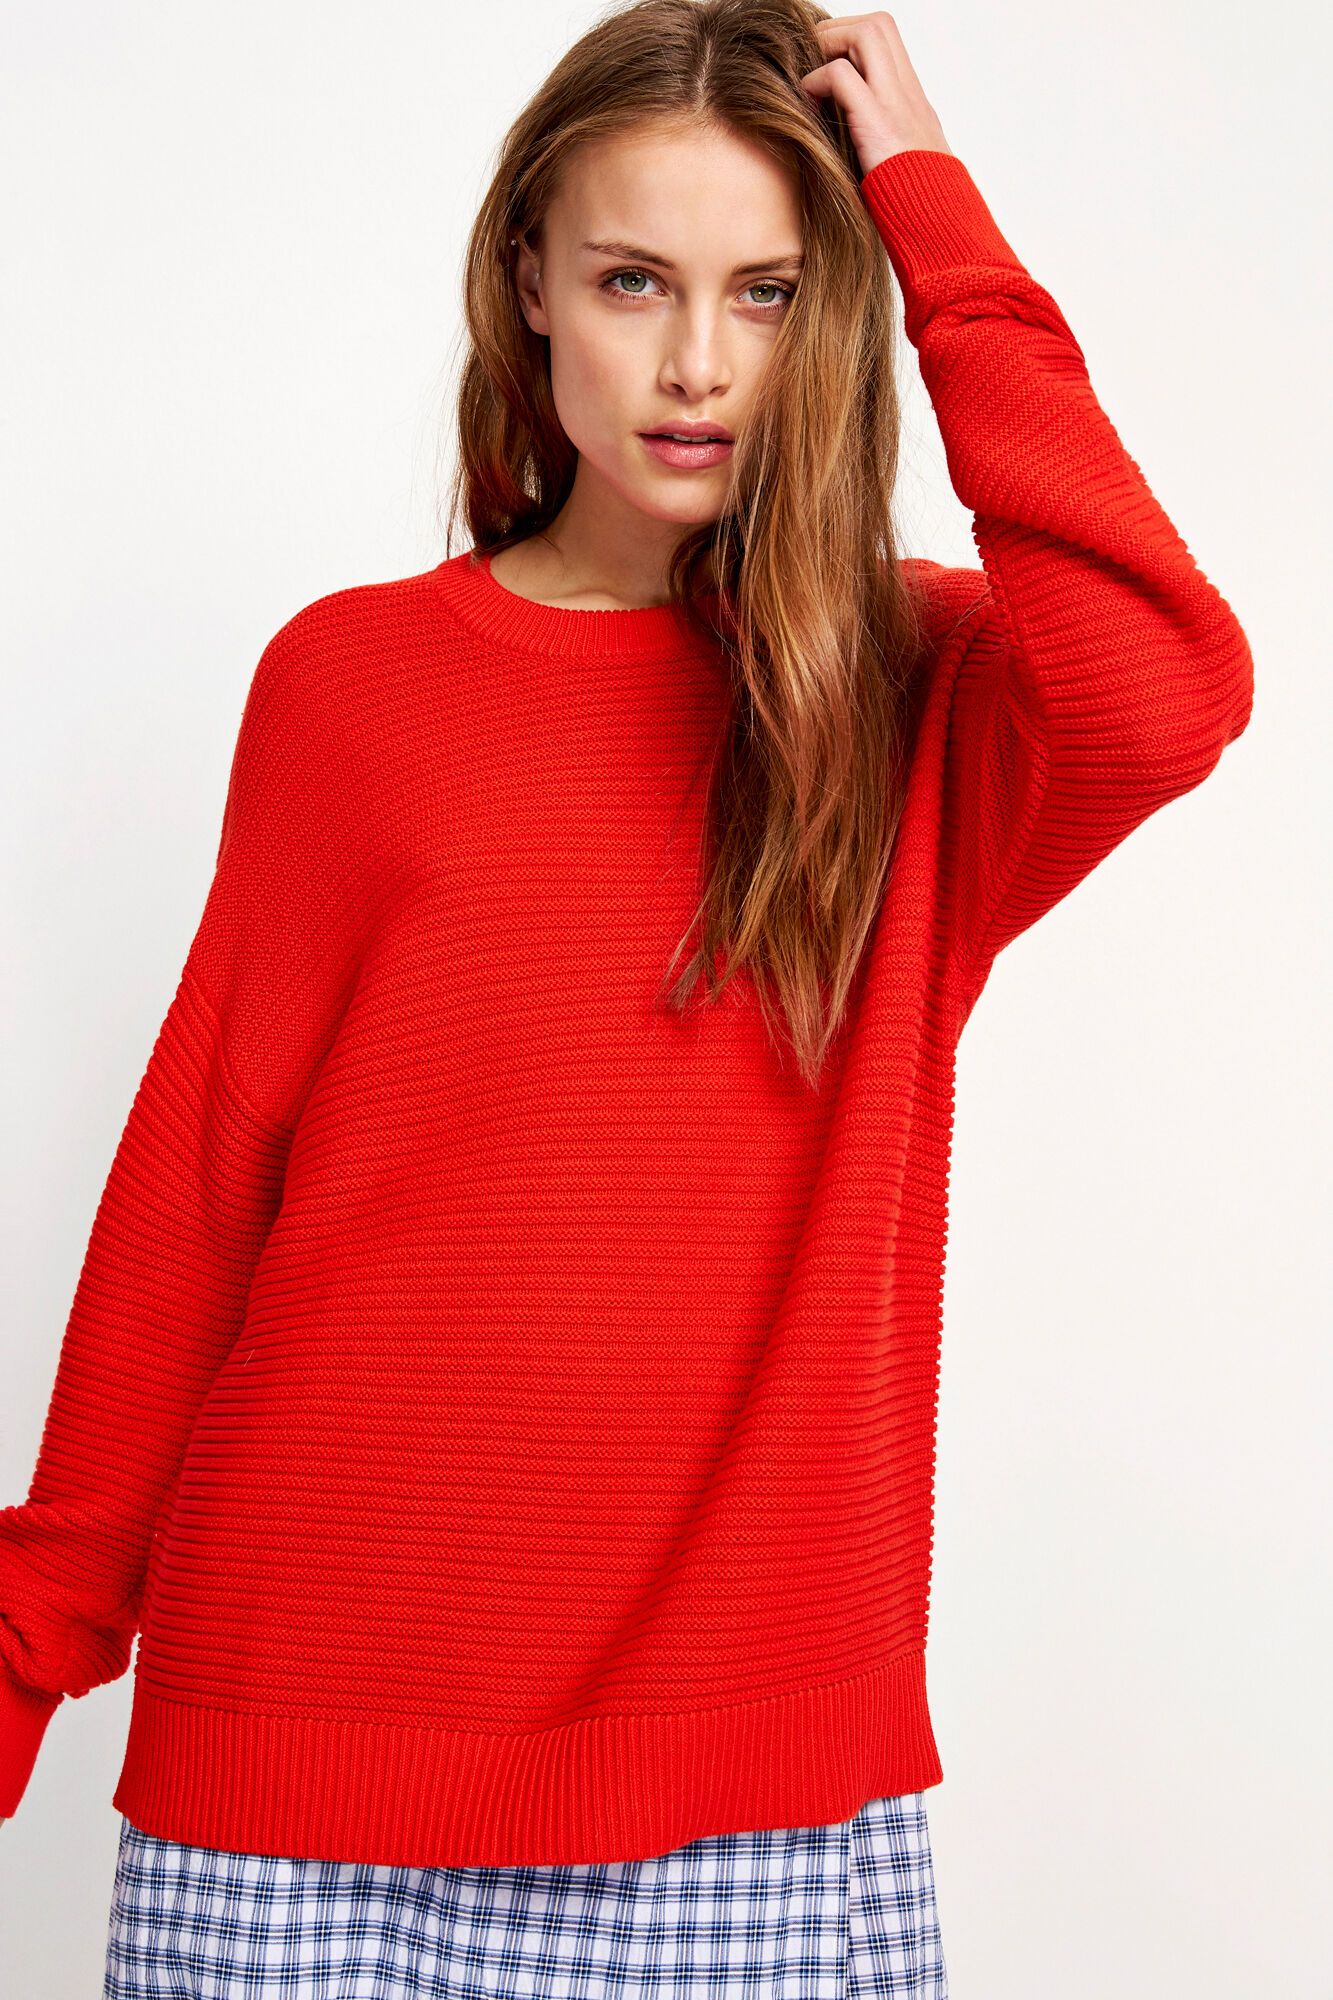 ENPALOS LS KNIT 5204, FIERY RED